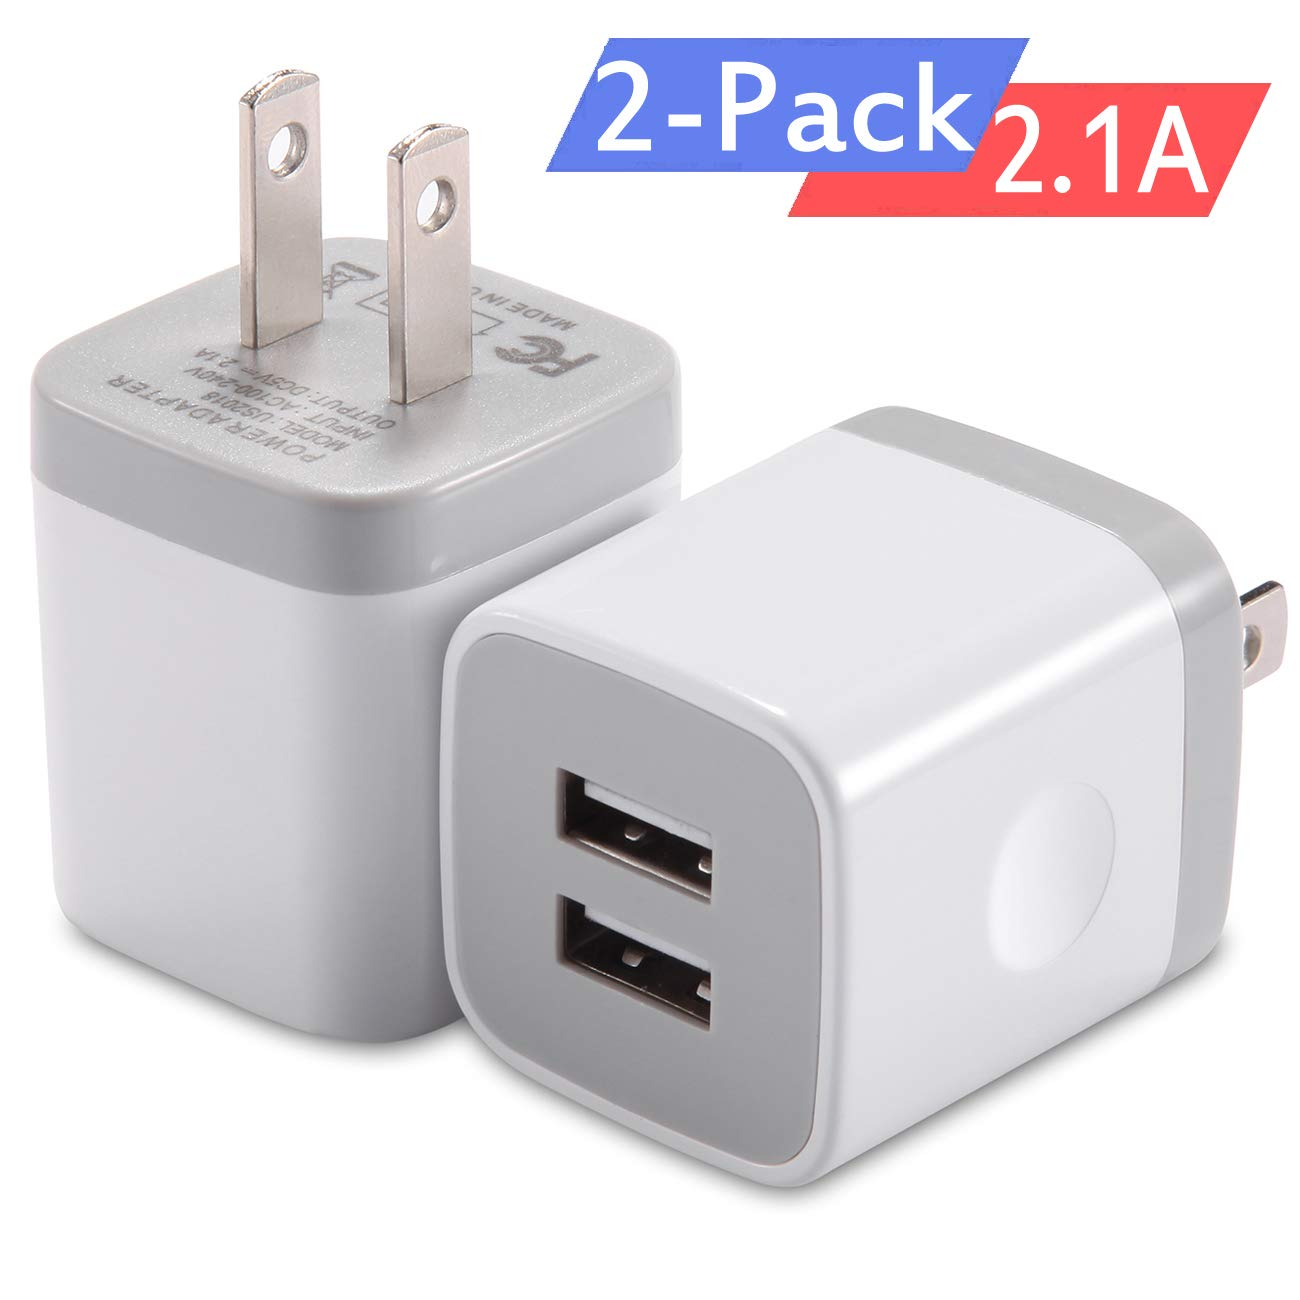 iPhone Wall Charger, Dual Port USB Charger 2.1AMP Home Travel Power Adapter Charging Plug Block Compatible with iPhone 8/7 Plus 6/6 Plus 5S 5 4S iPad 2/3/4/Mini/Pro/Air iPod by WITPRO (White) 2-Pack